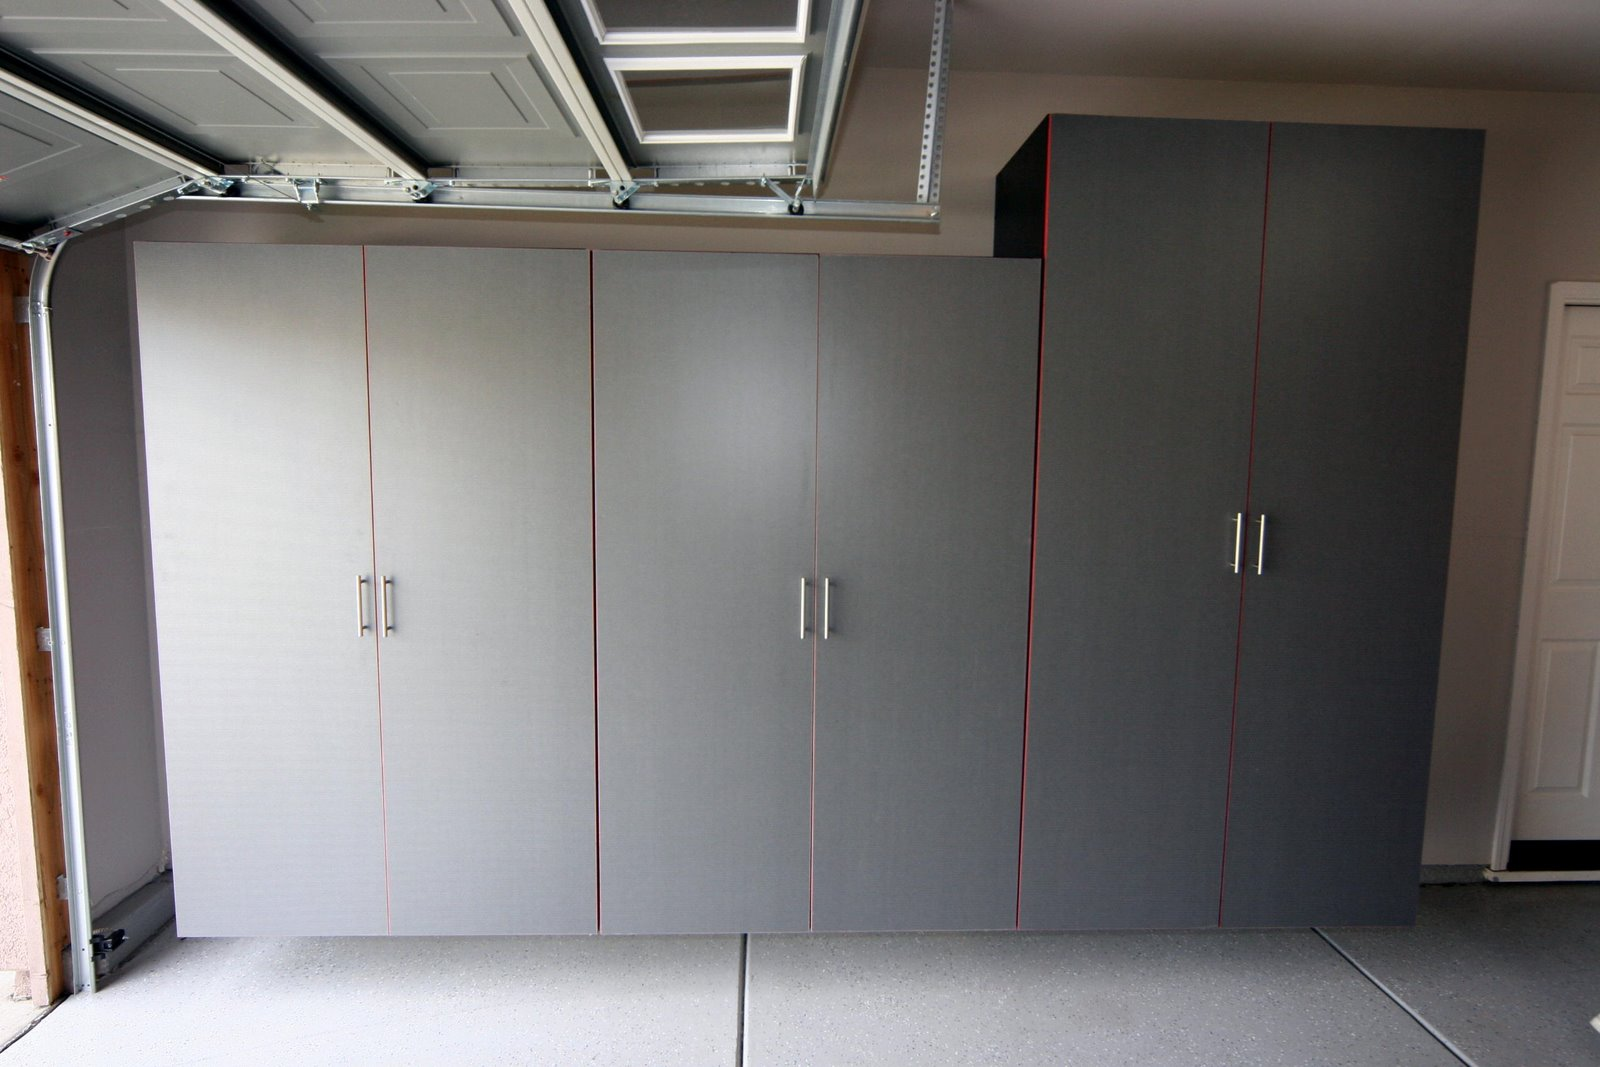 Cool Colors For Your Garage Cabinets. 2 Door Rav4 For Sale. Closet Shutter Doors. Wrangler Jeep 4 Door. Harvey Windows And Doors. Exterior French Door. Garage Parking Aids. Garage Door Opener For 9 Foot Door. Building A Barn Door